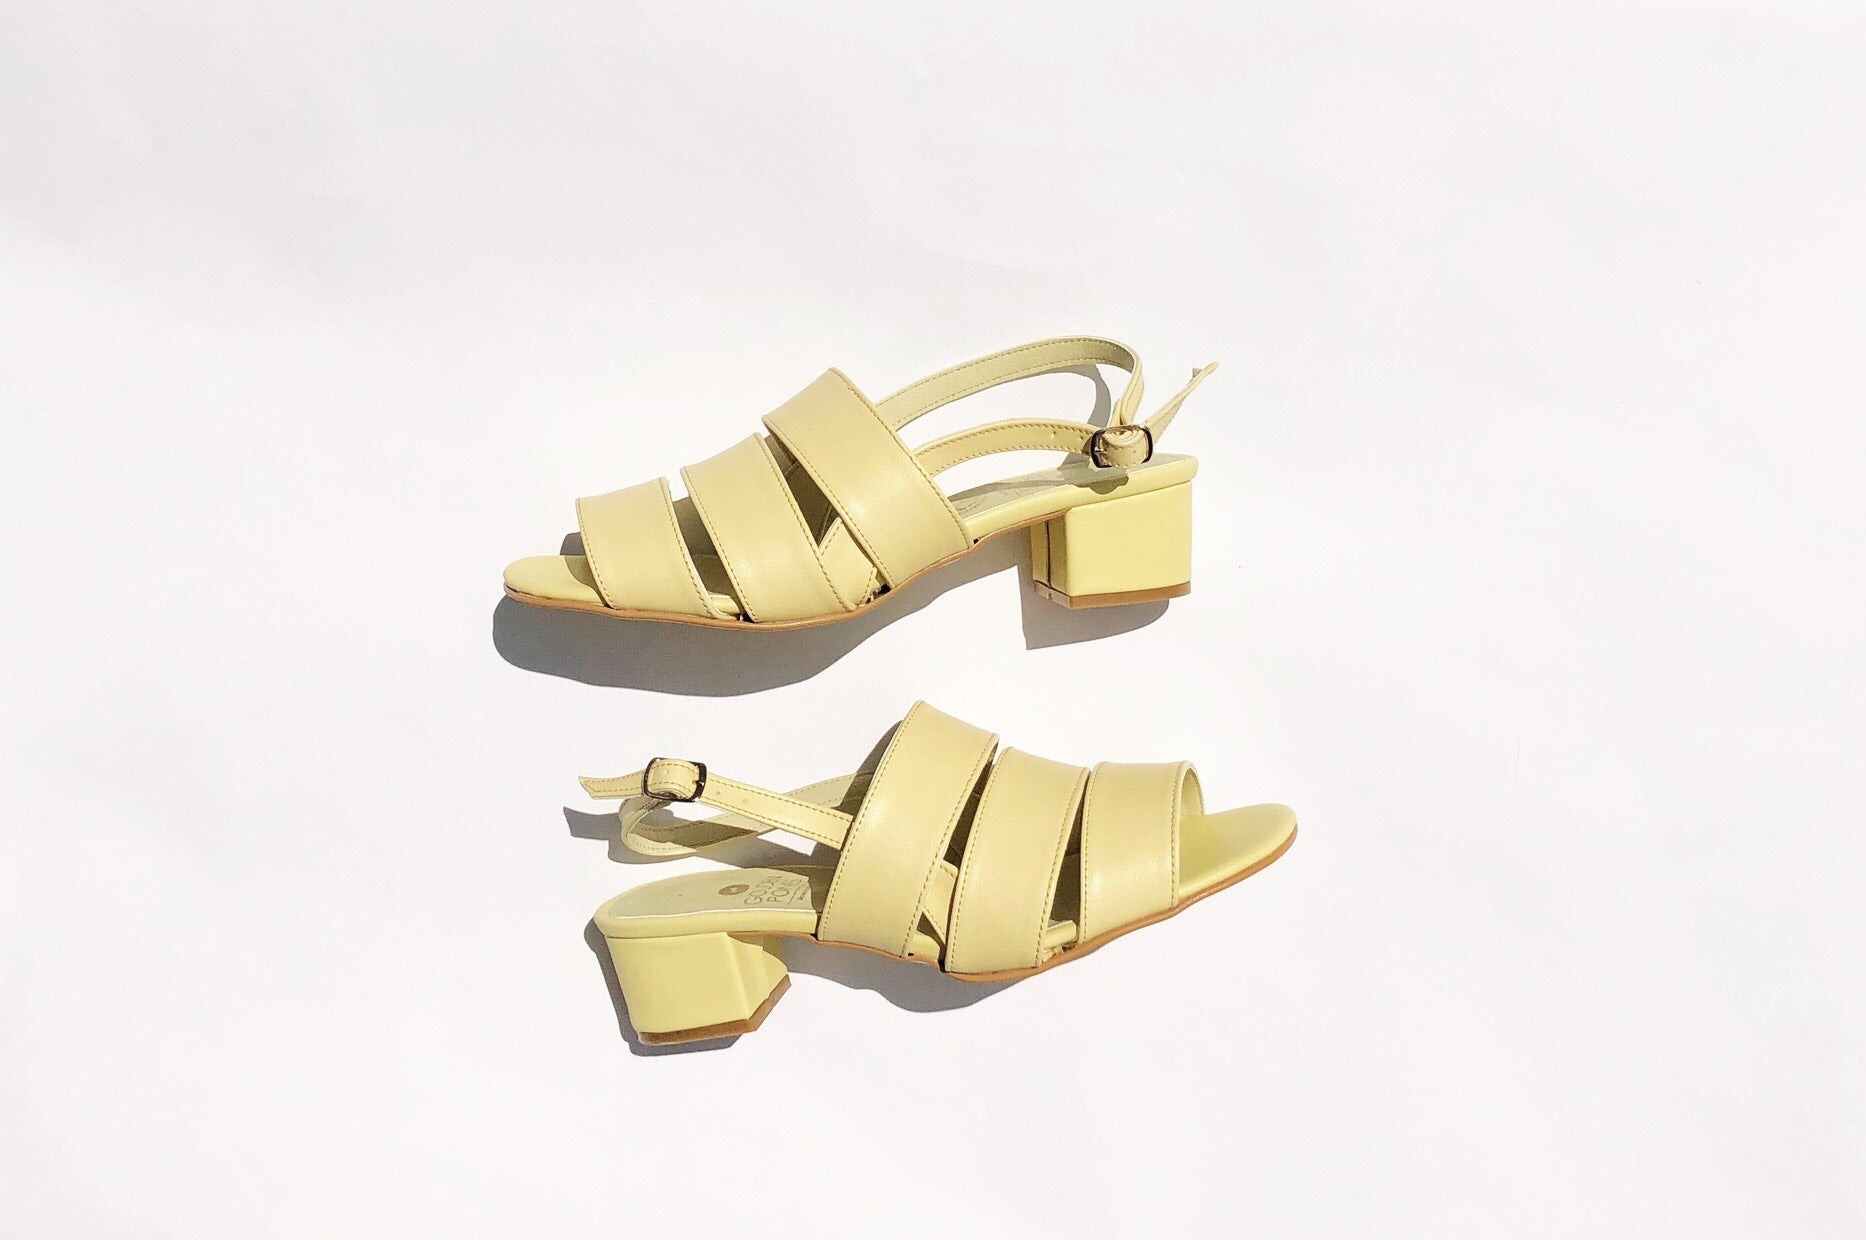 f29bab1071b10 Poppy Faux Leather Strapped Sandals – golden ponies